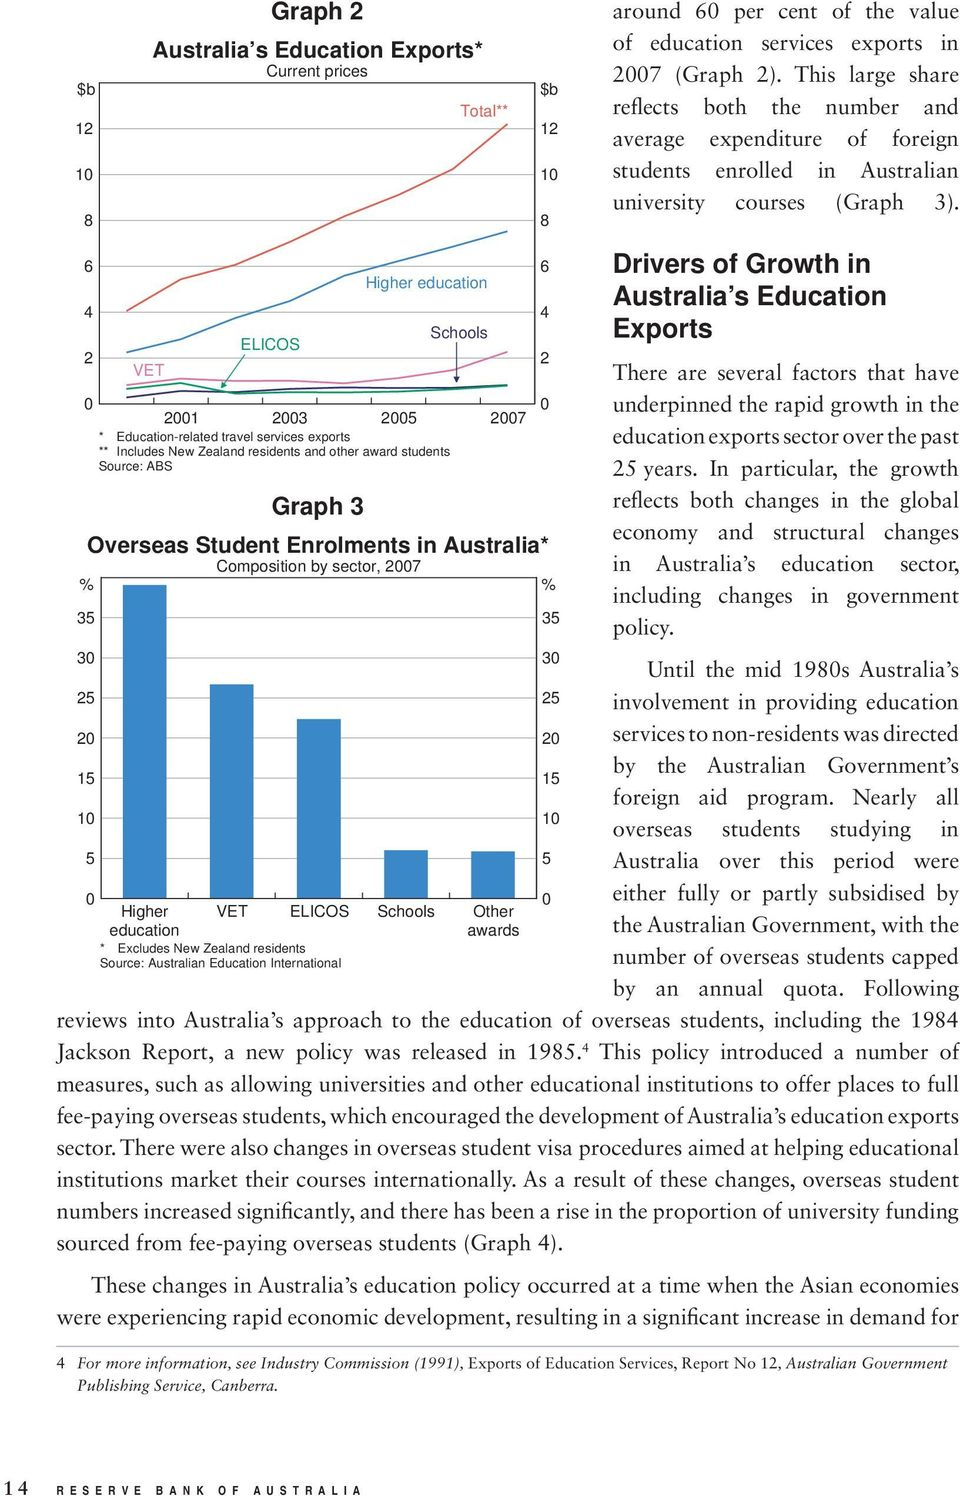 Source: Australian Education International around per cent of the value of education services exports in 27 (Graph 2).